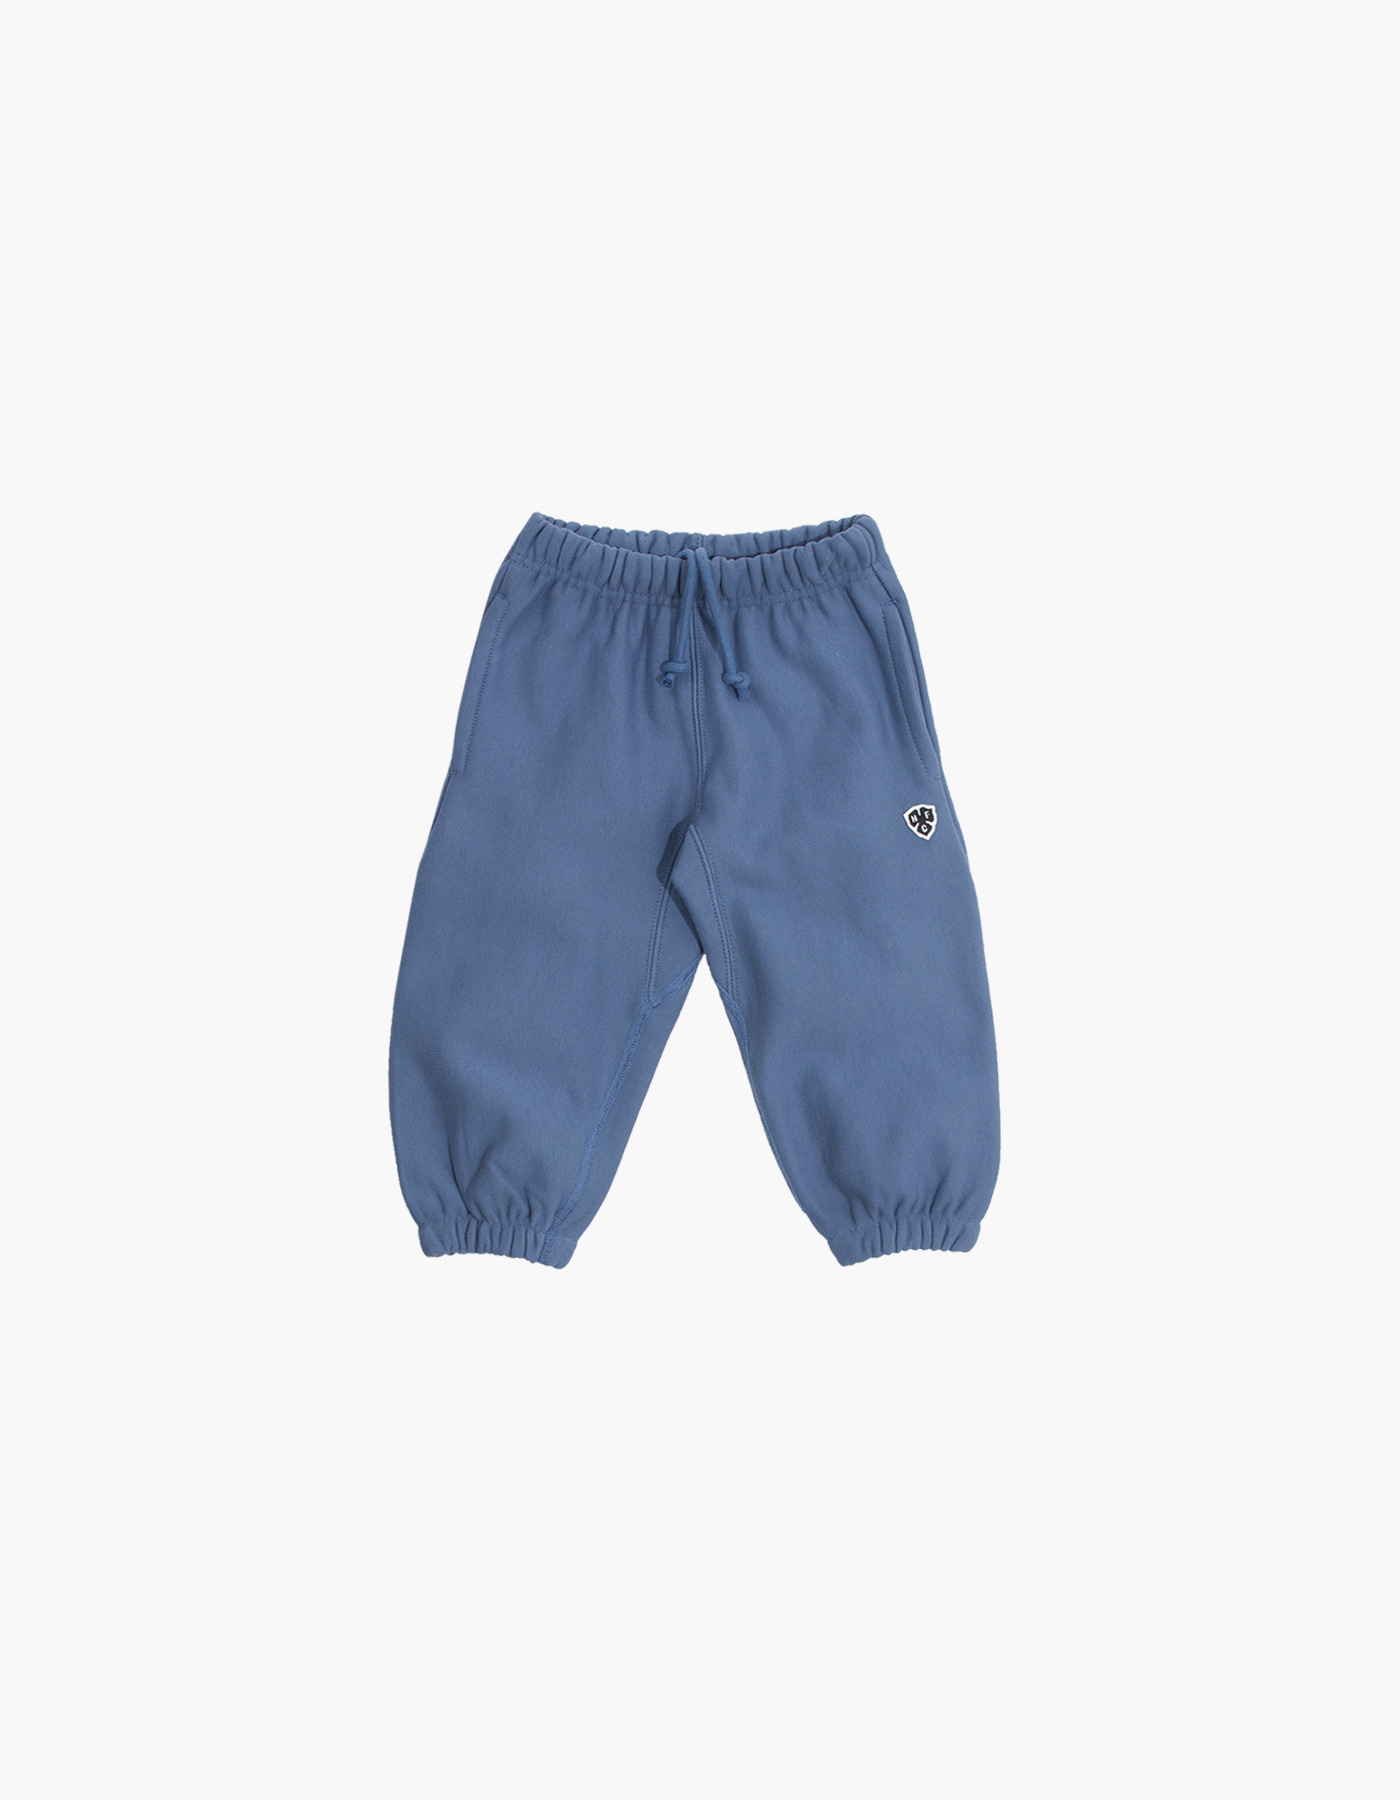 231 KIDS HFC SWEATPANTS / NAVY